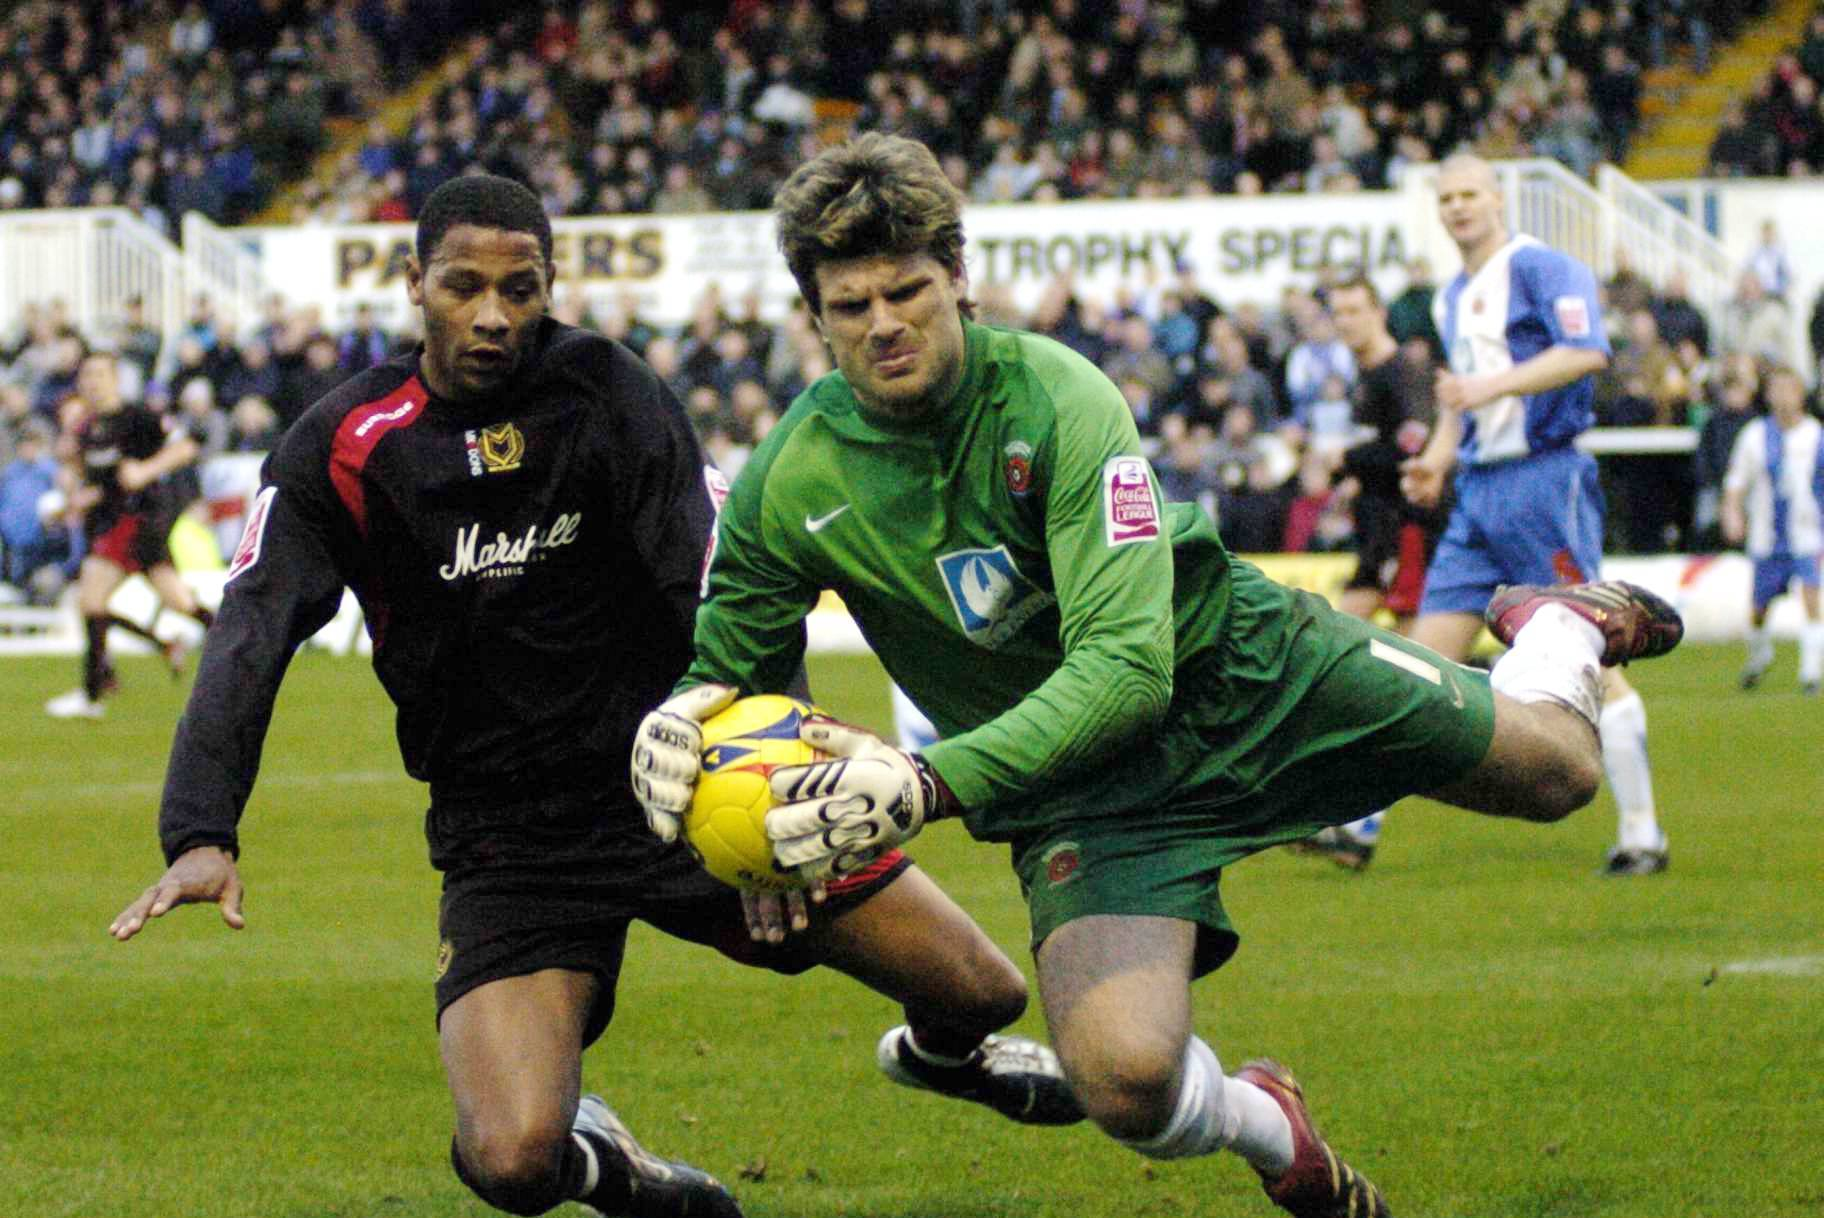 Former Boro keeper could sign permanently for Pools